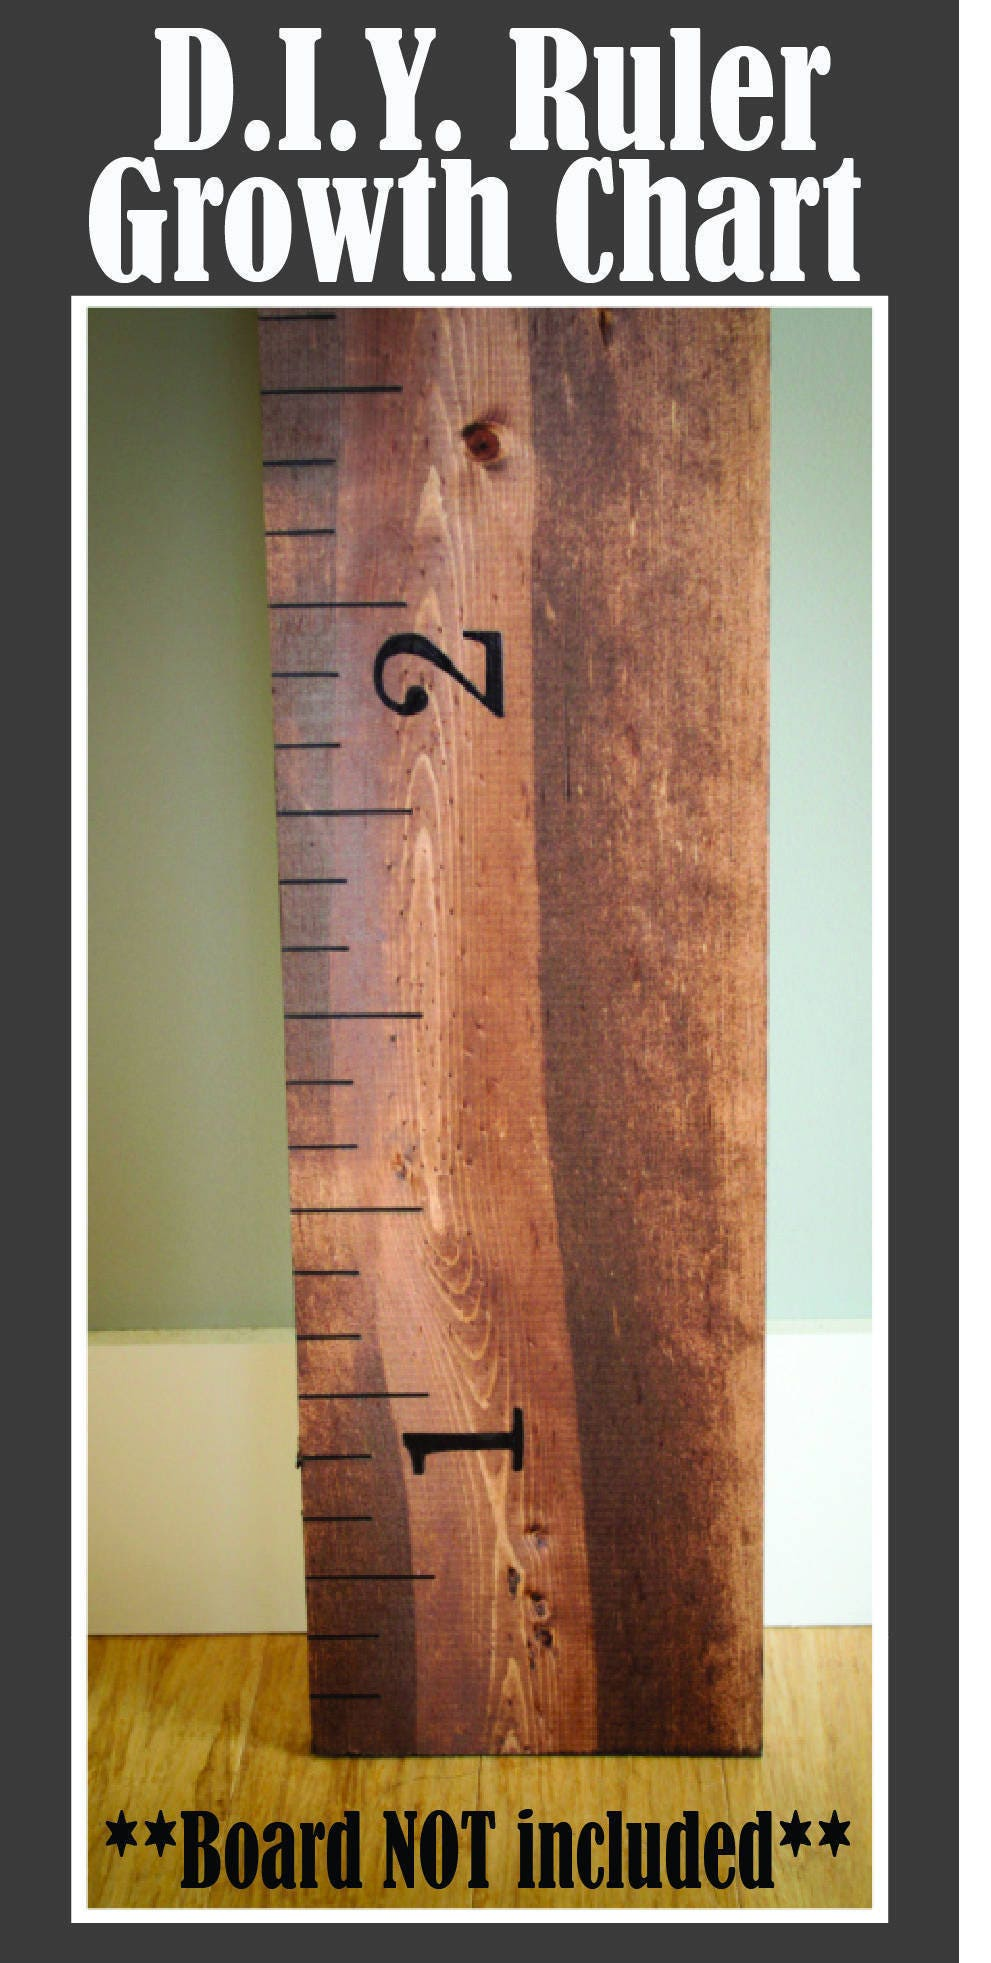 Diy growth chart ruler board not included ruler growth chart gallery photo gallery photo gallery photo gallery photo nvjuhfo Gallery